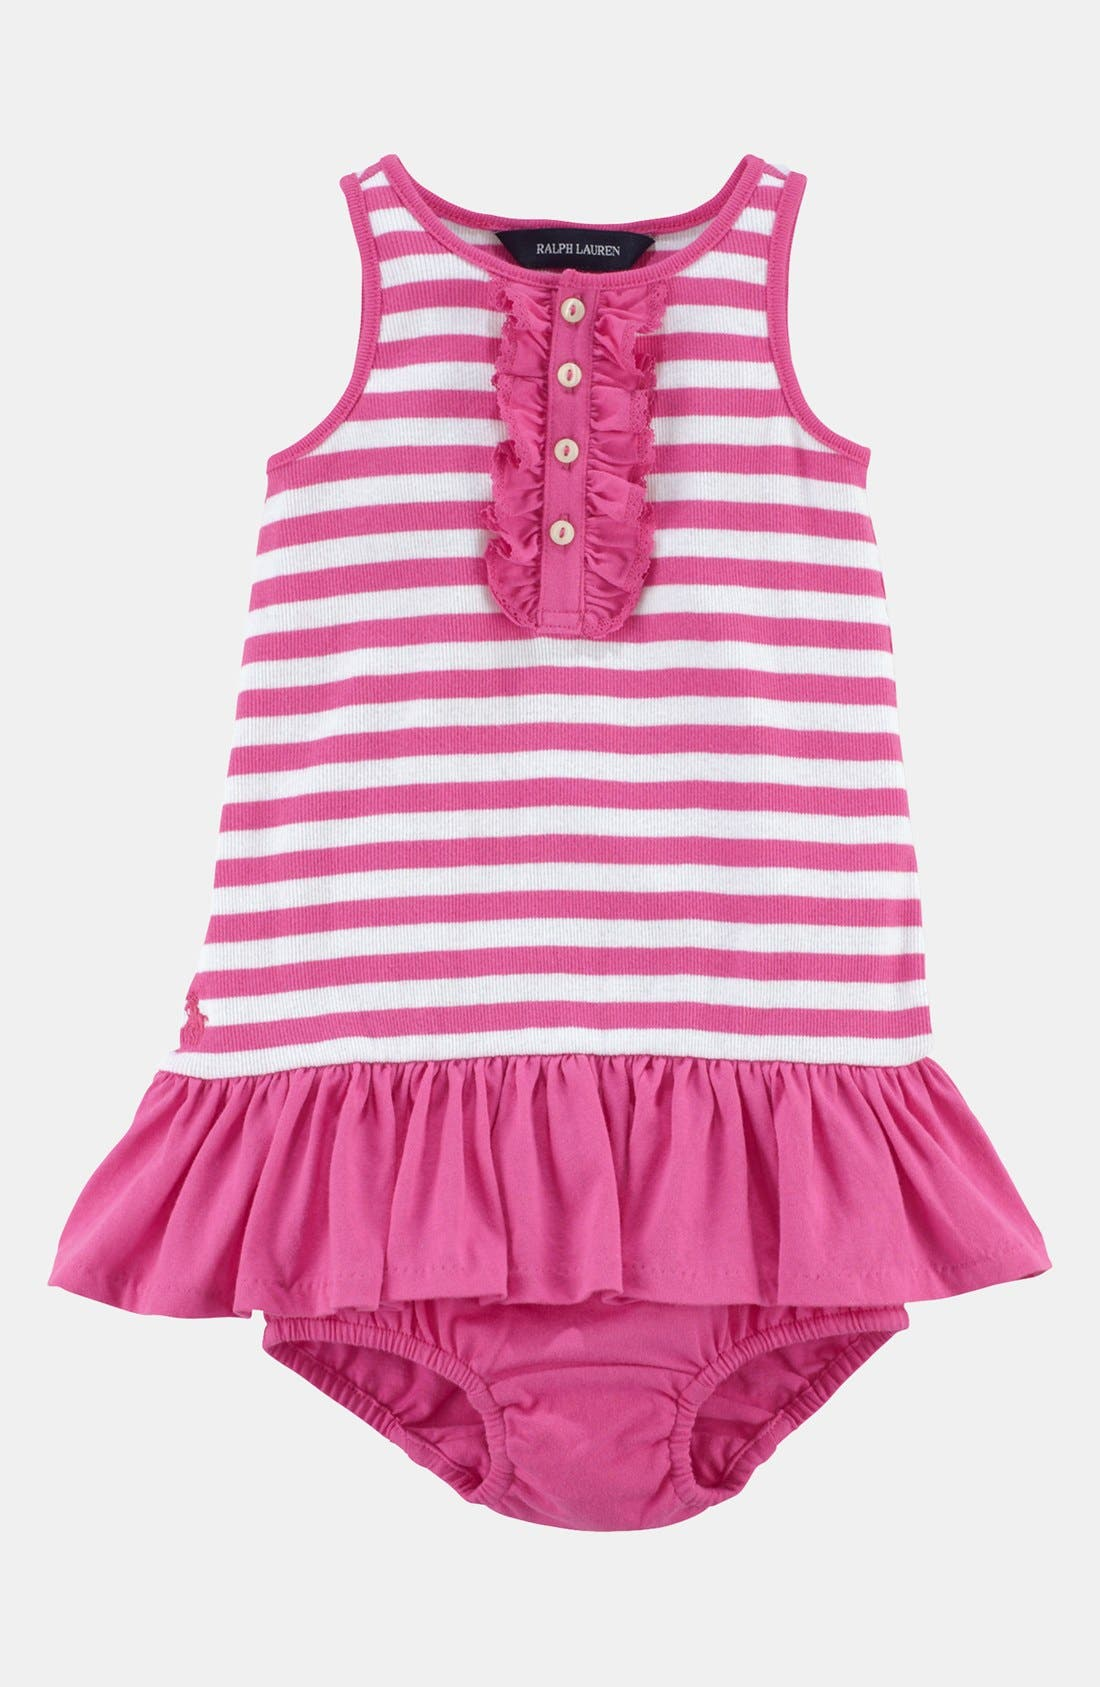 Main Image - Ralph Lauren Ruffle Henley Dress & Bloomers (Baby)